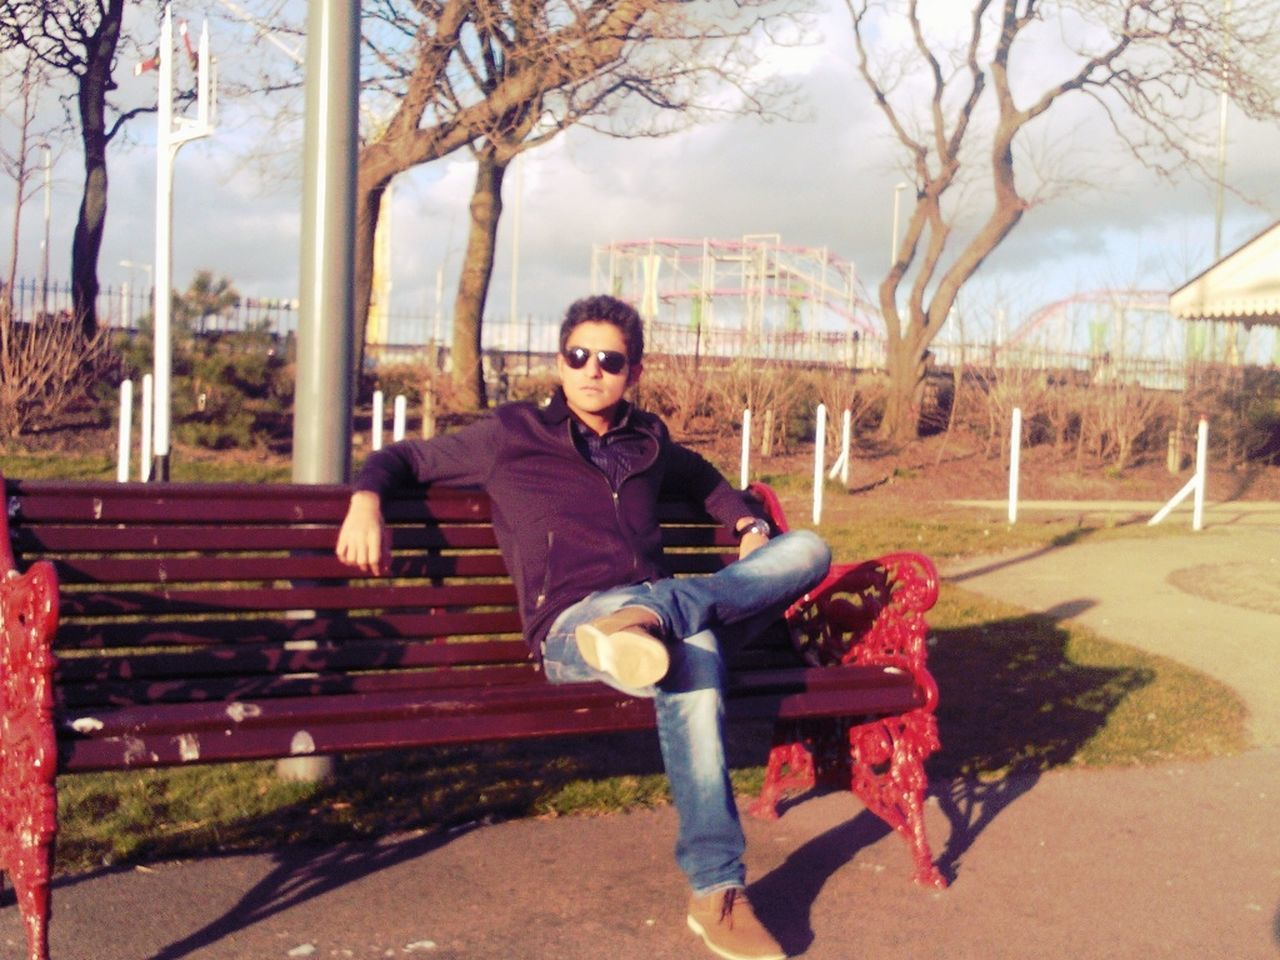 full length, looking at camera, one person, young adult, sunglasses, sitting, portrait, tree, one young man only, casual clothing, one man only, day, young men, only men, outdoors, leisure activity, smiling, shadow, relaxation, real people, adults only, bare tree, adult, sky, people